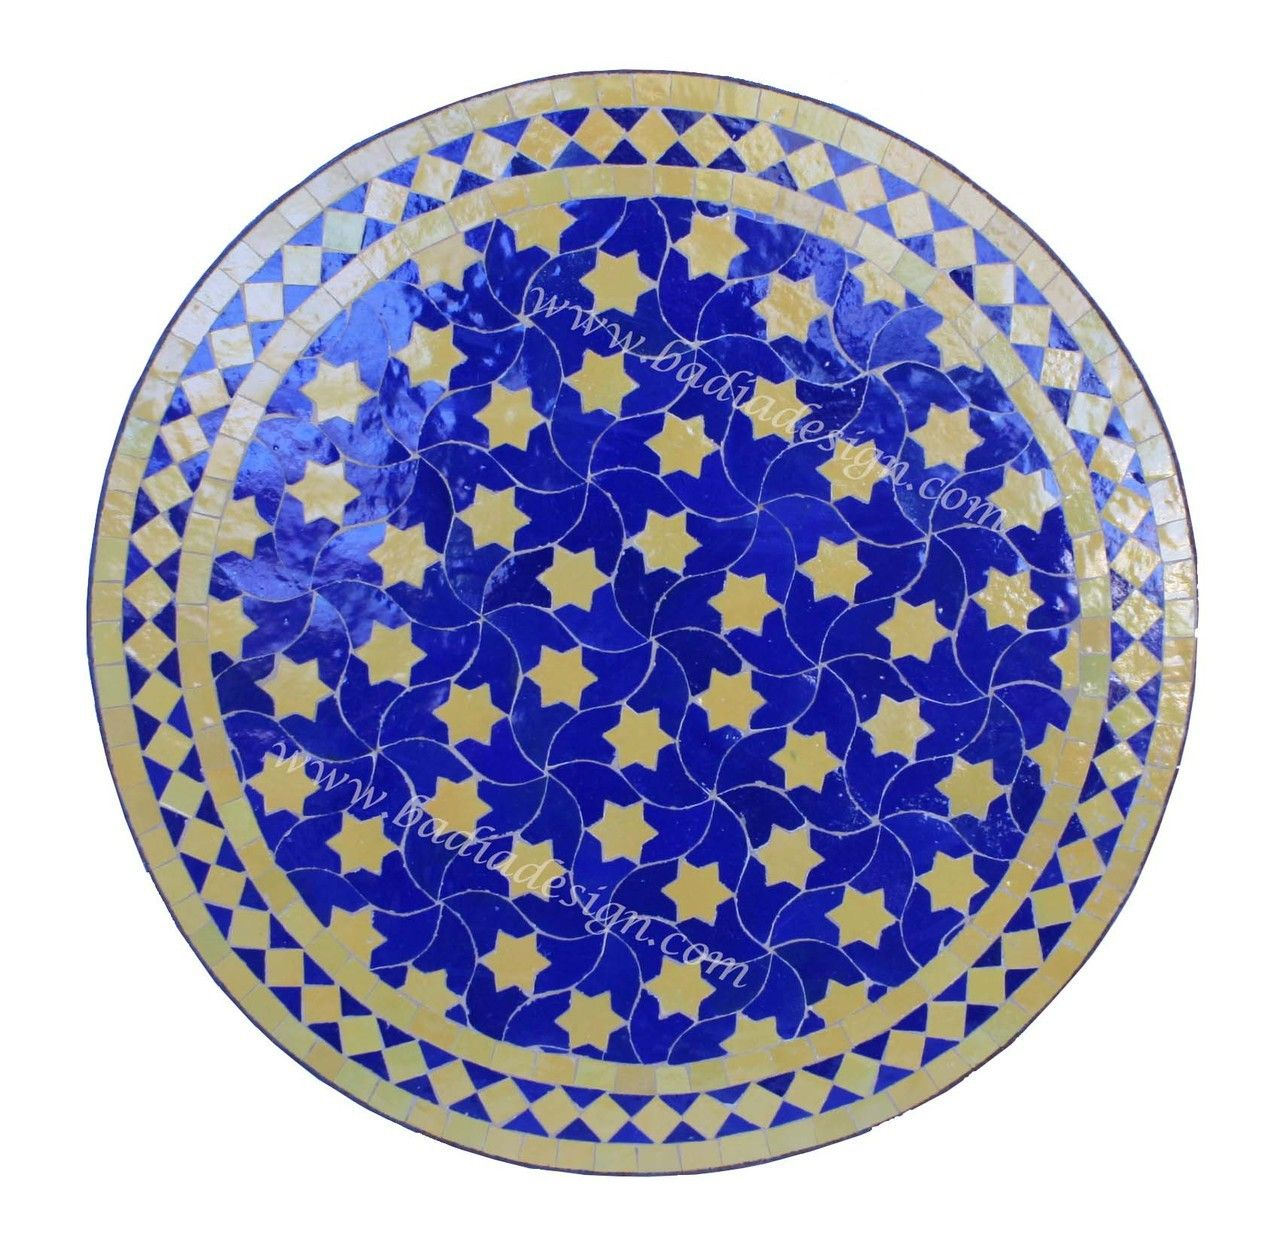 Round Moroccan Tile Table Including Moroccan Tile Table Top Los Angeles,  Tile Table Top, Moroccan Patio Furniture, Moroccan Tile Table, Mosaic Tile  Table ...